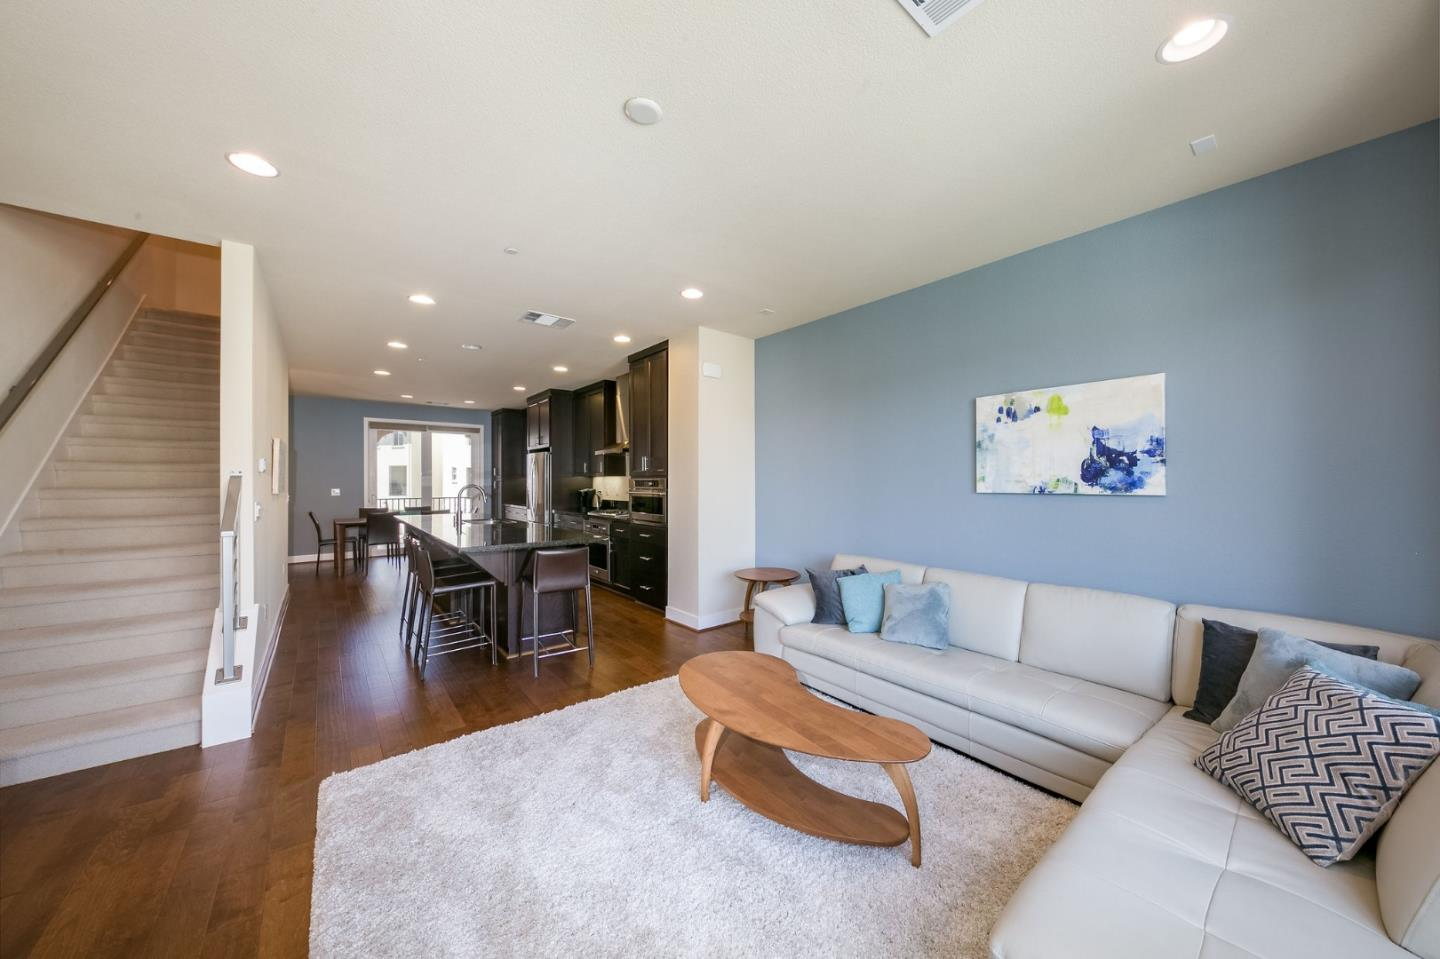 Detail Gallery Image 1 of 10 For 2862 Baze Rd, San Mateo, CA, 94403 - 2 Beds | 2/1 Baths